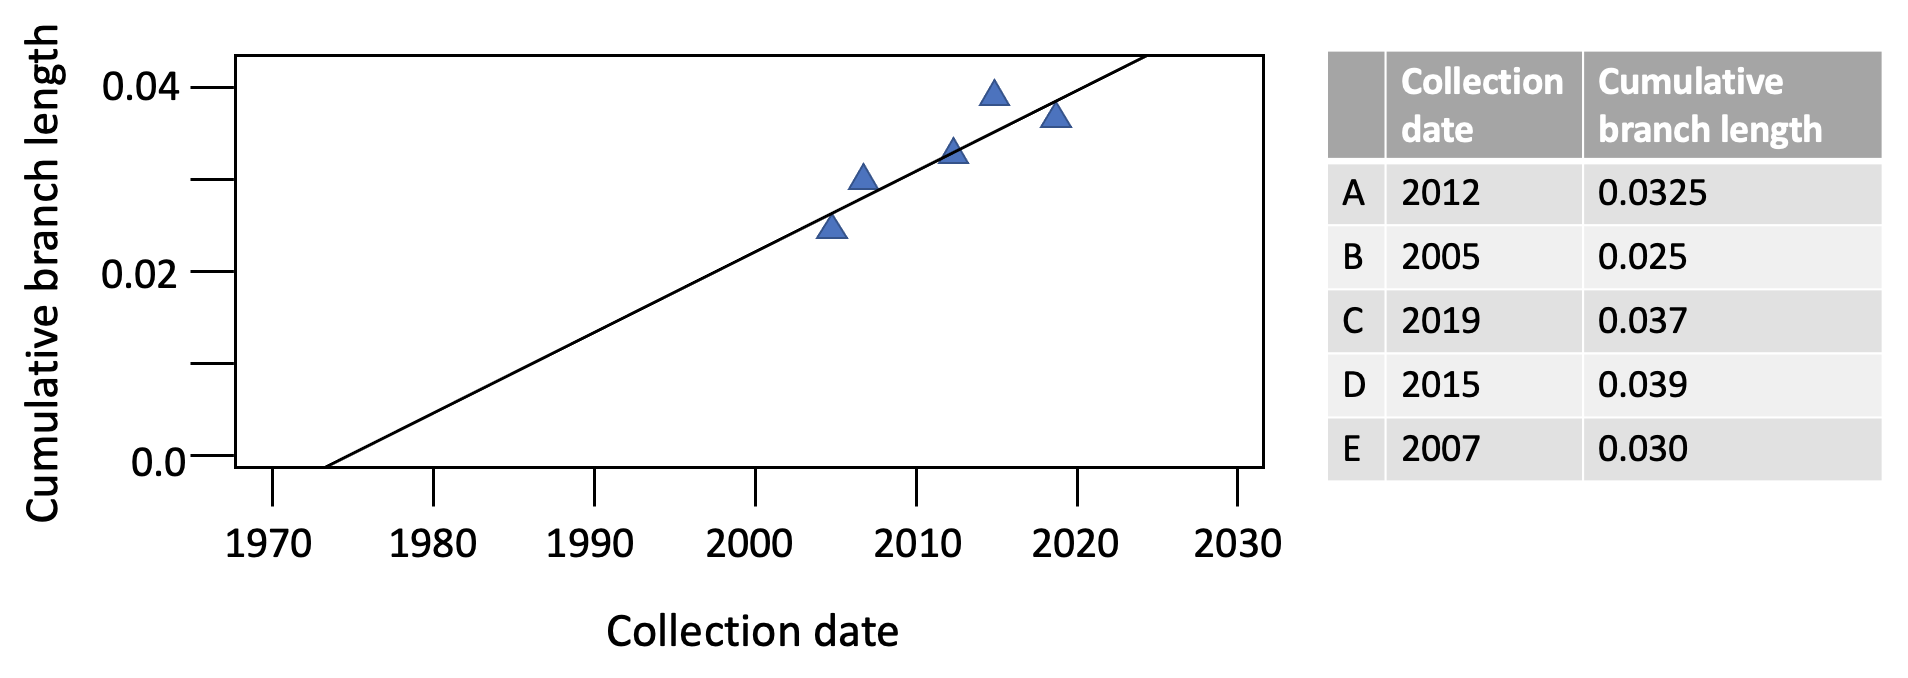 Plot of cumulative branch length vs. collection date.